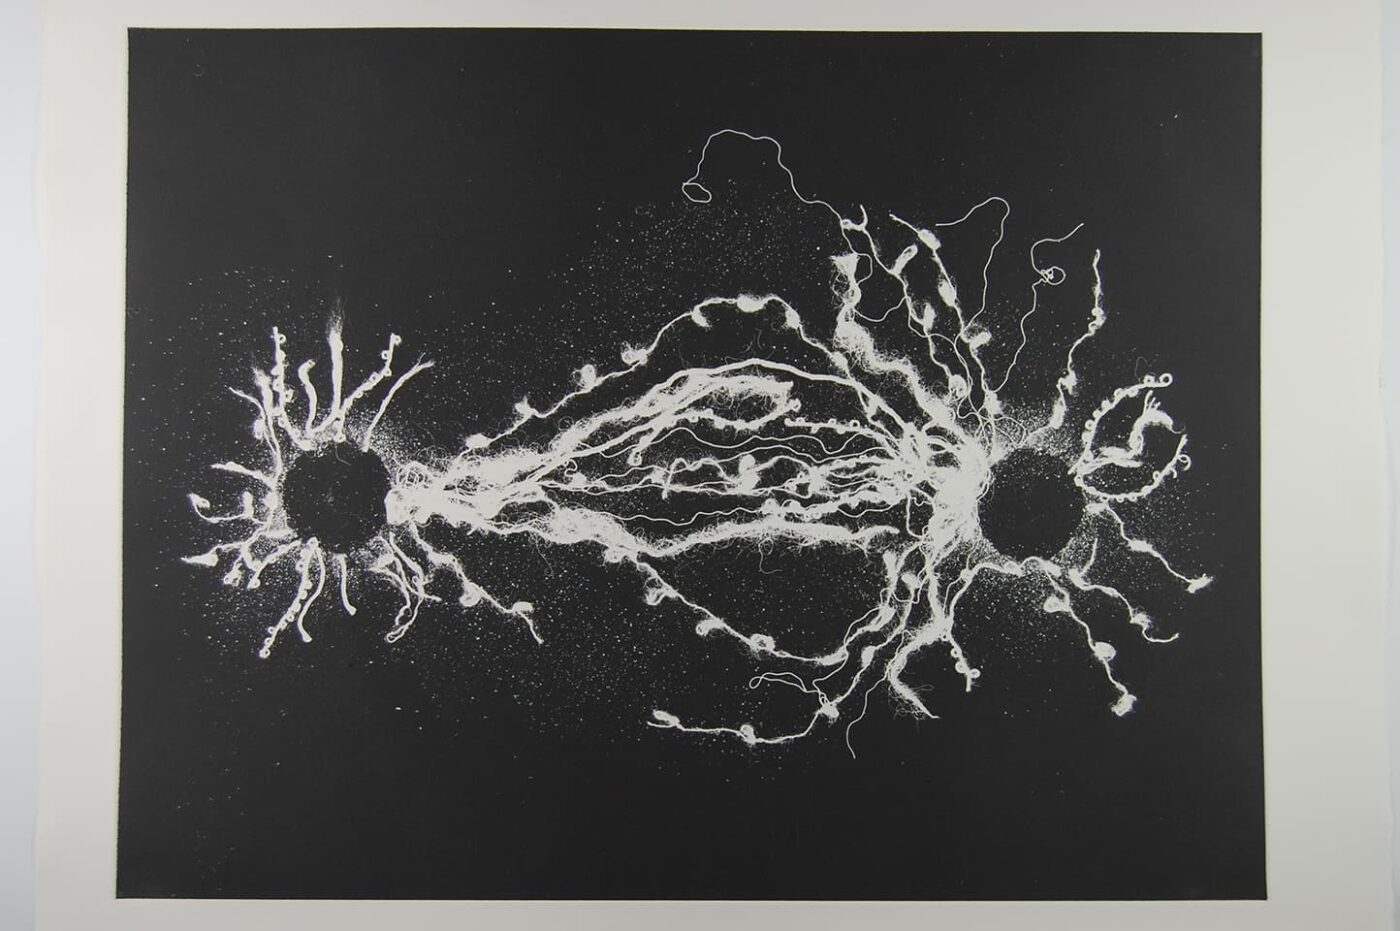 <strong>Out of Body 3.1</strong>, Susan Aldworth, monoprint, 56 x 76 cms, 2009.